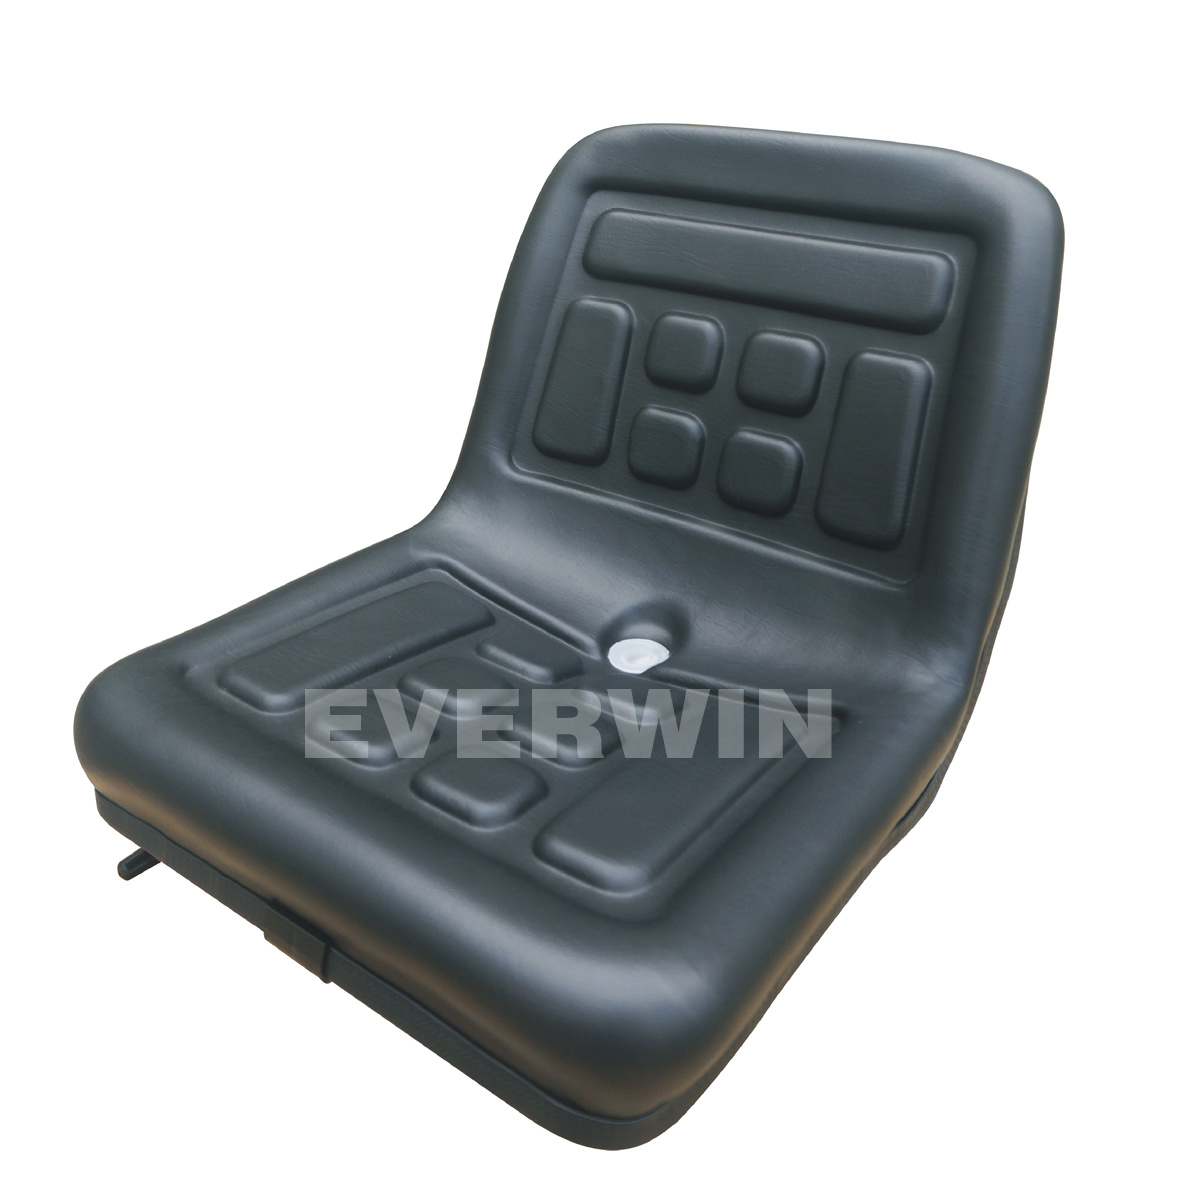 Tractor Seat with Water Drain Holes for John Deere Massey Ferguson